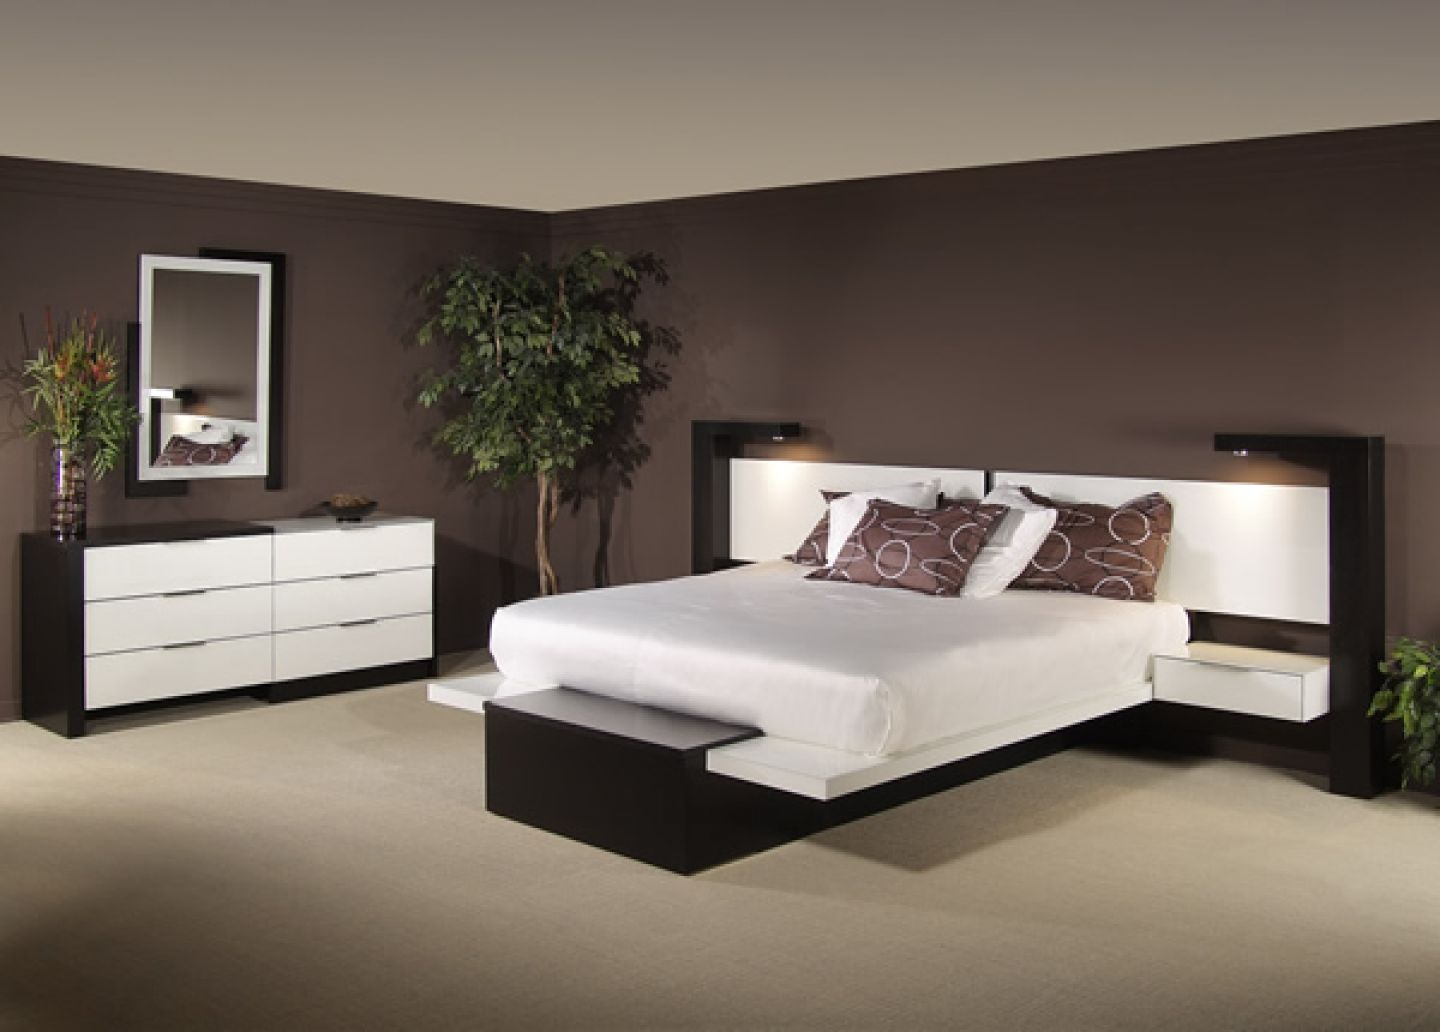 Home Furniture Designs Alluring Contemporary Furniture Designs Ideas  Bedroom Furniture . Inspiration Design